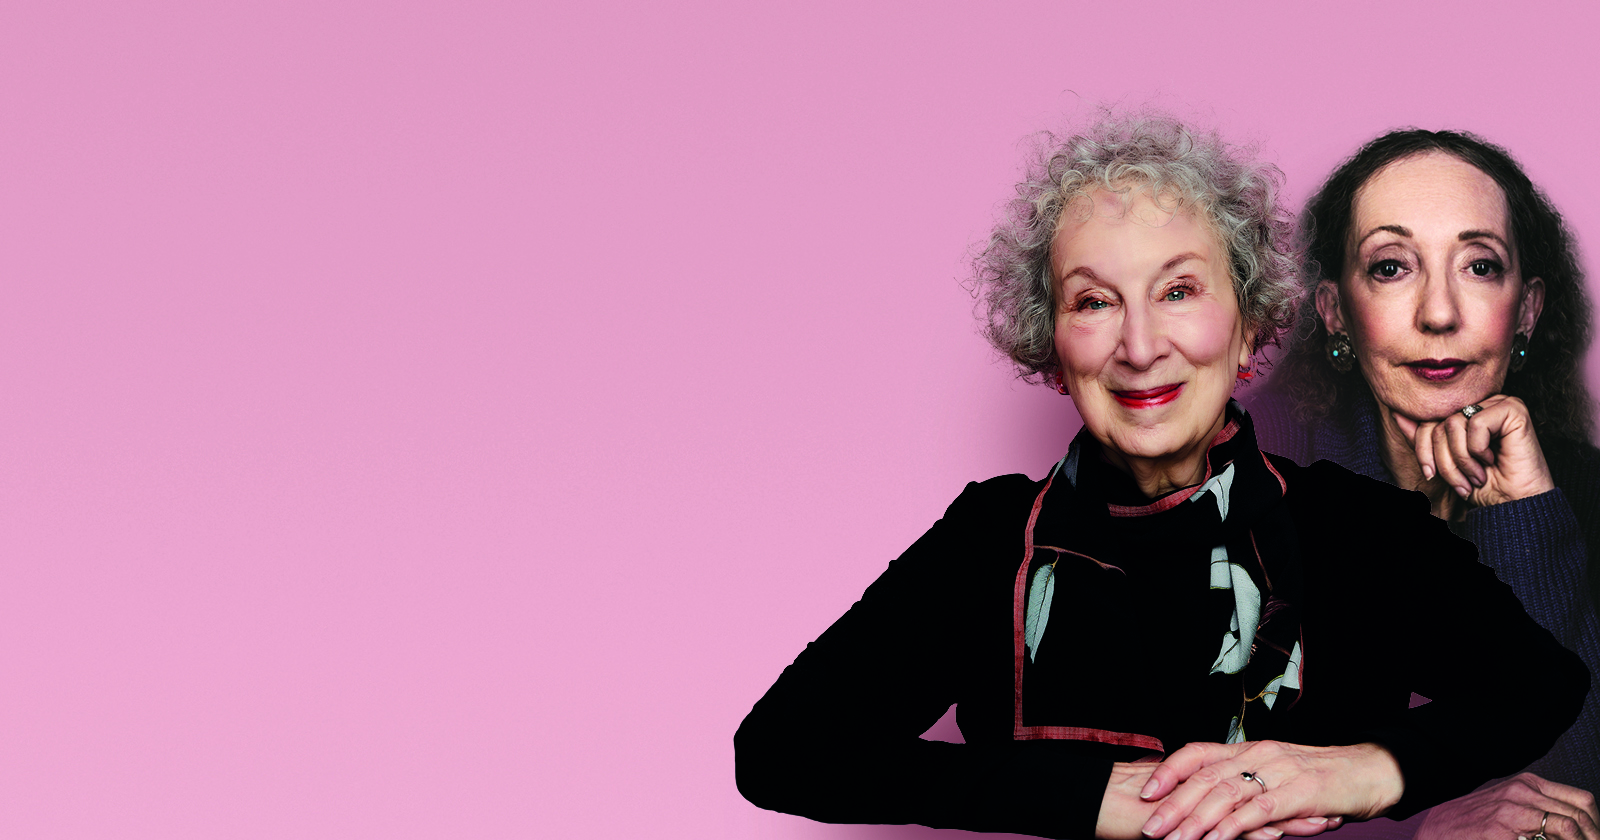 MARGARET ATWOOD IN CONVERSATION WITH JOYCE CAROL OATES